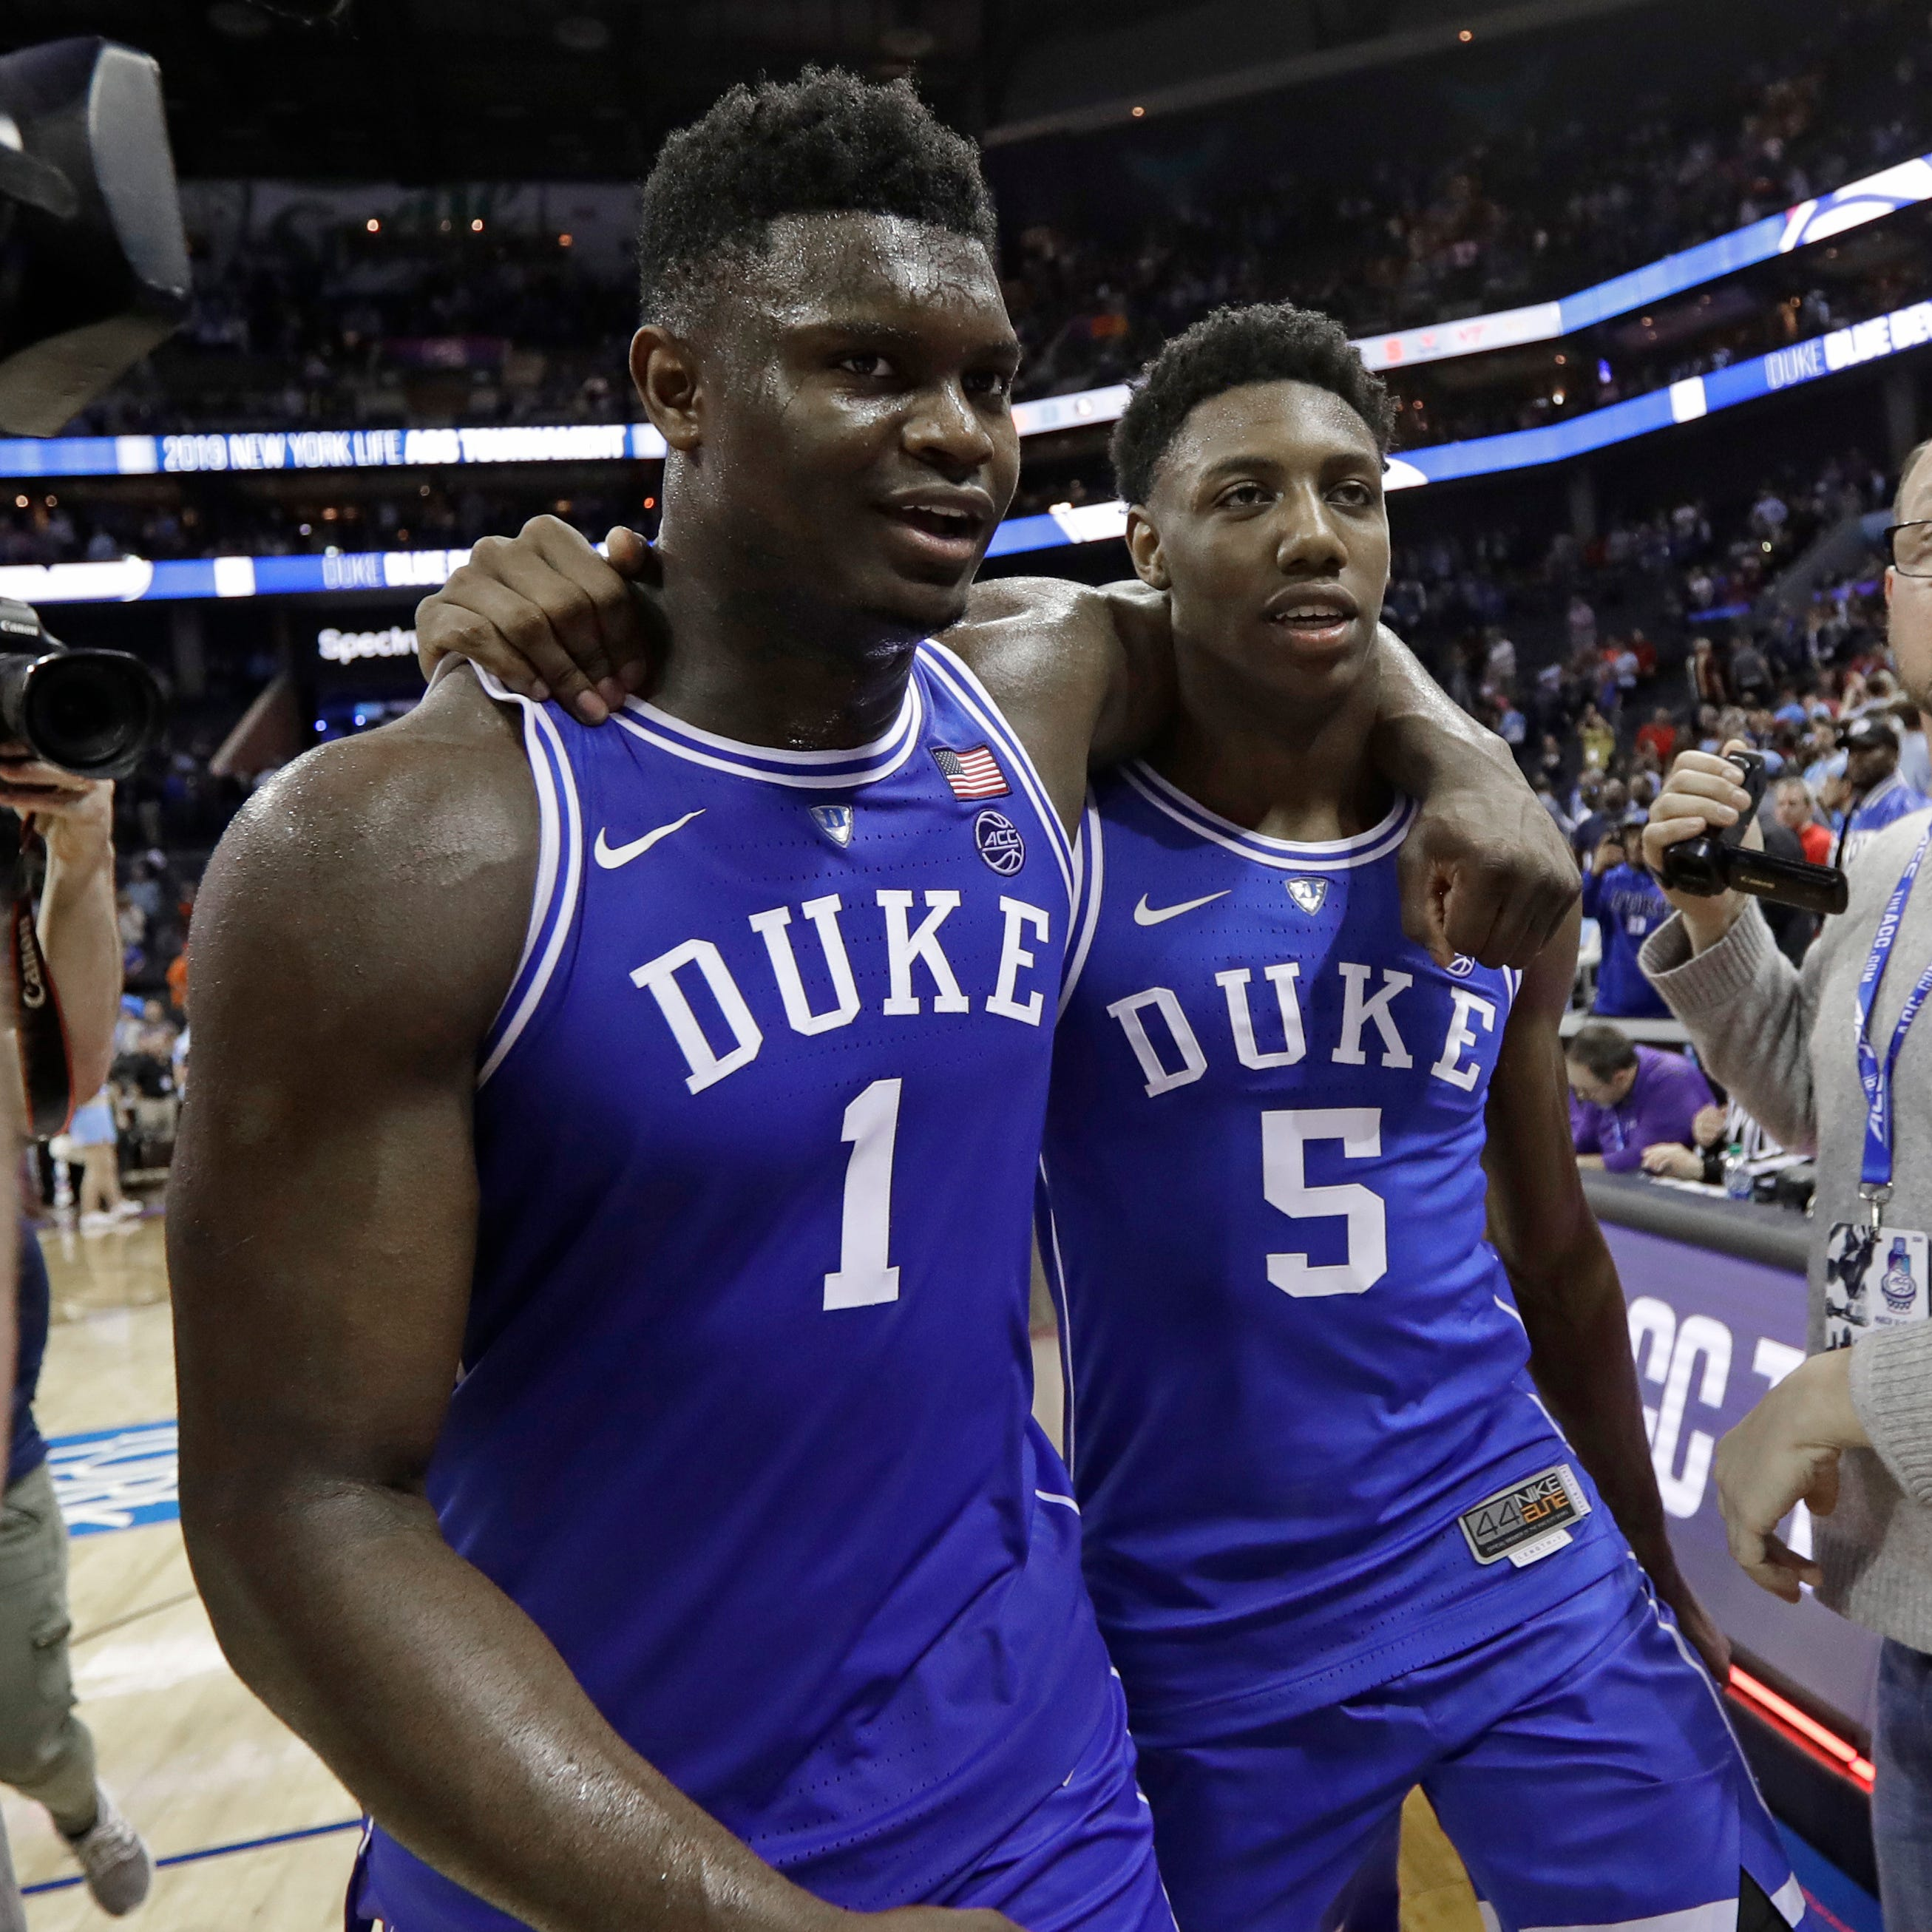 Doc's Morning Line: March Madness, where every team matters thanks to a $10 bracket bet